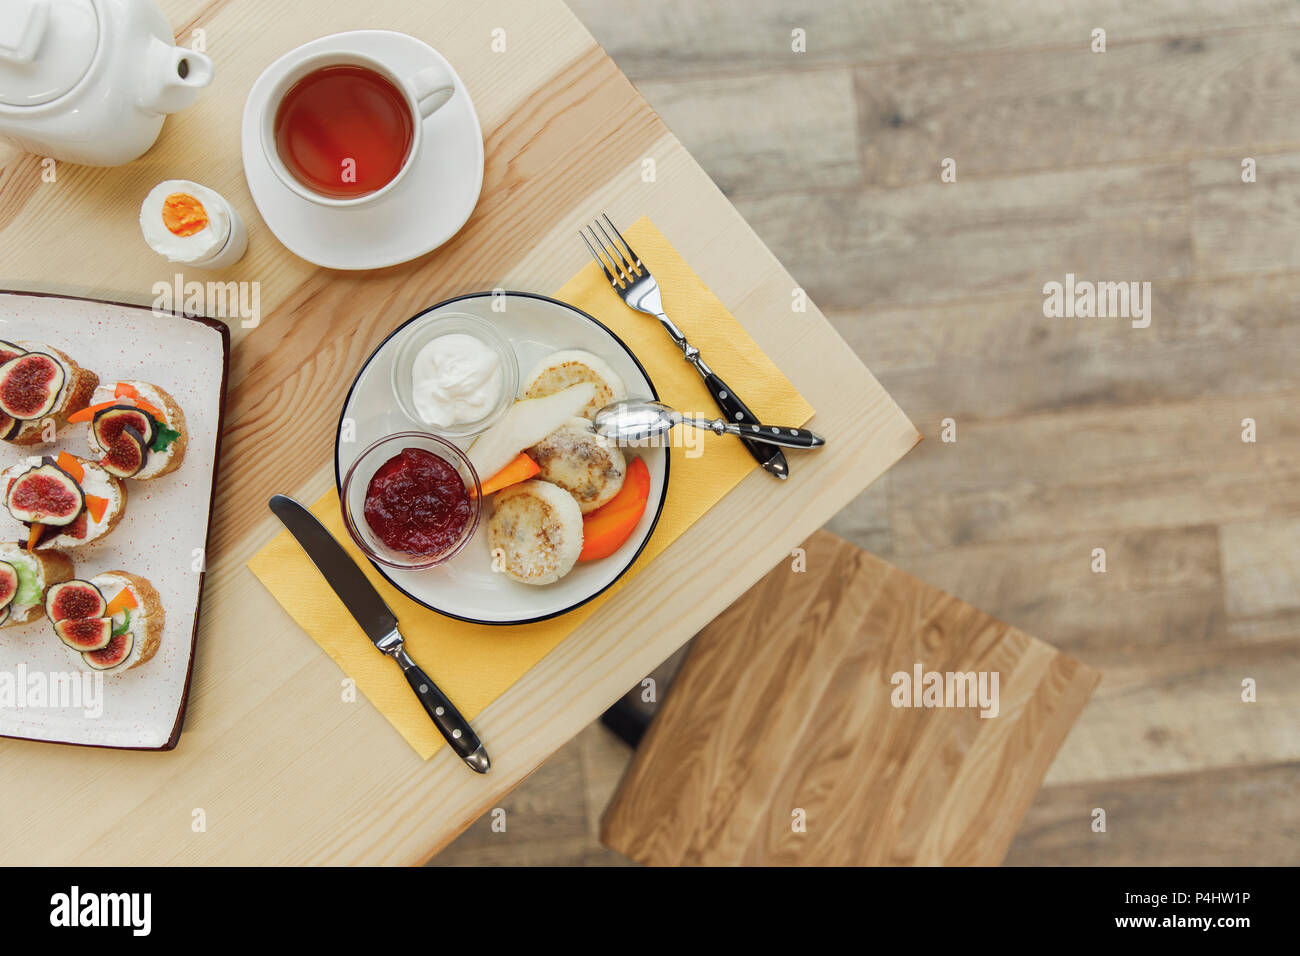 top view of tasty healthy breakfast with tea set on wooden table - Stock Image